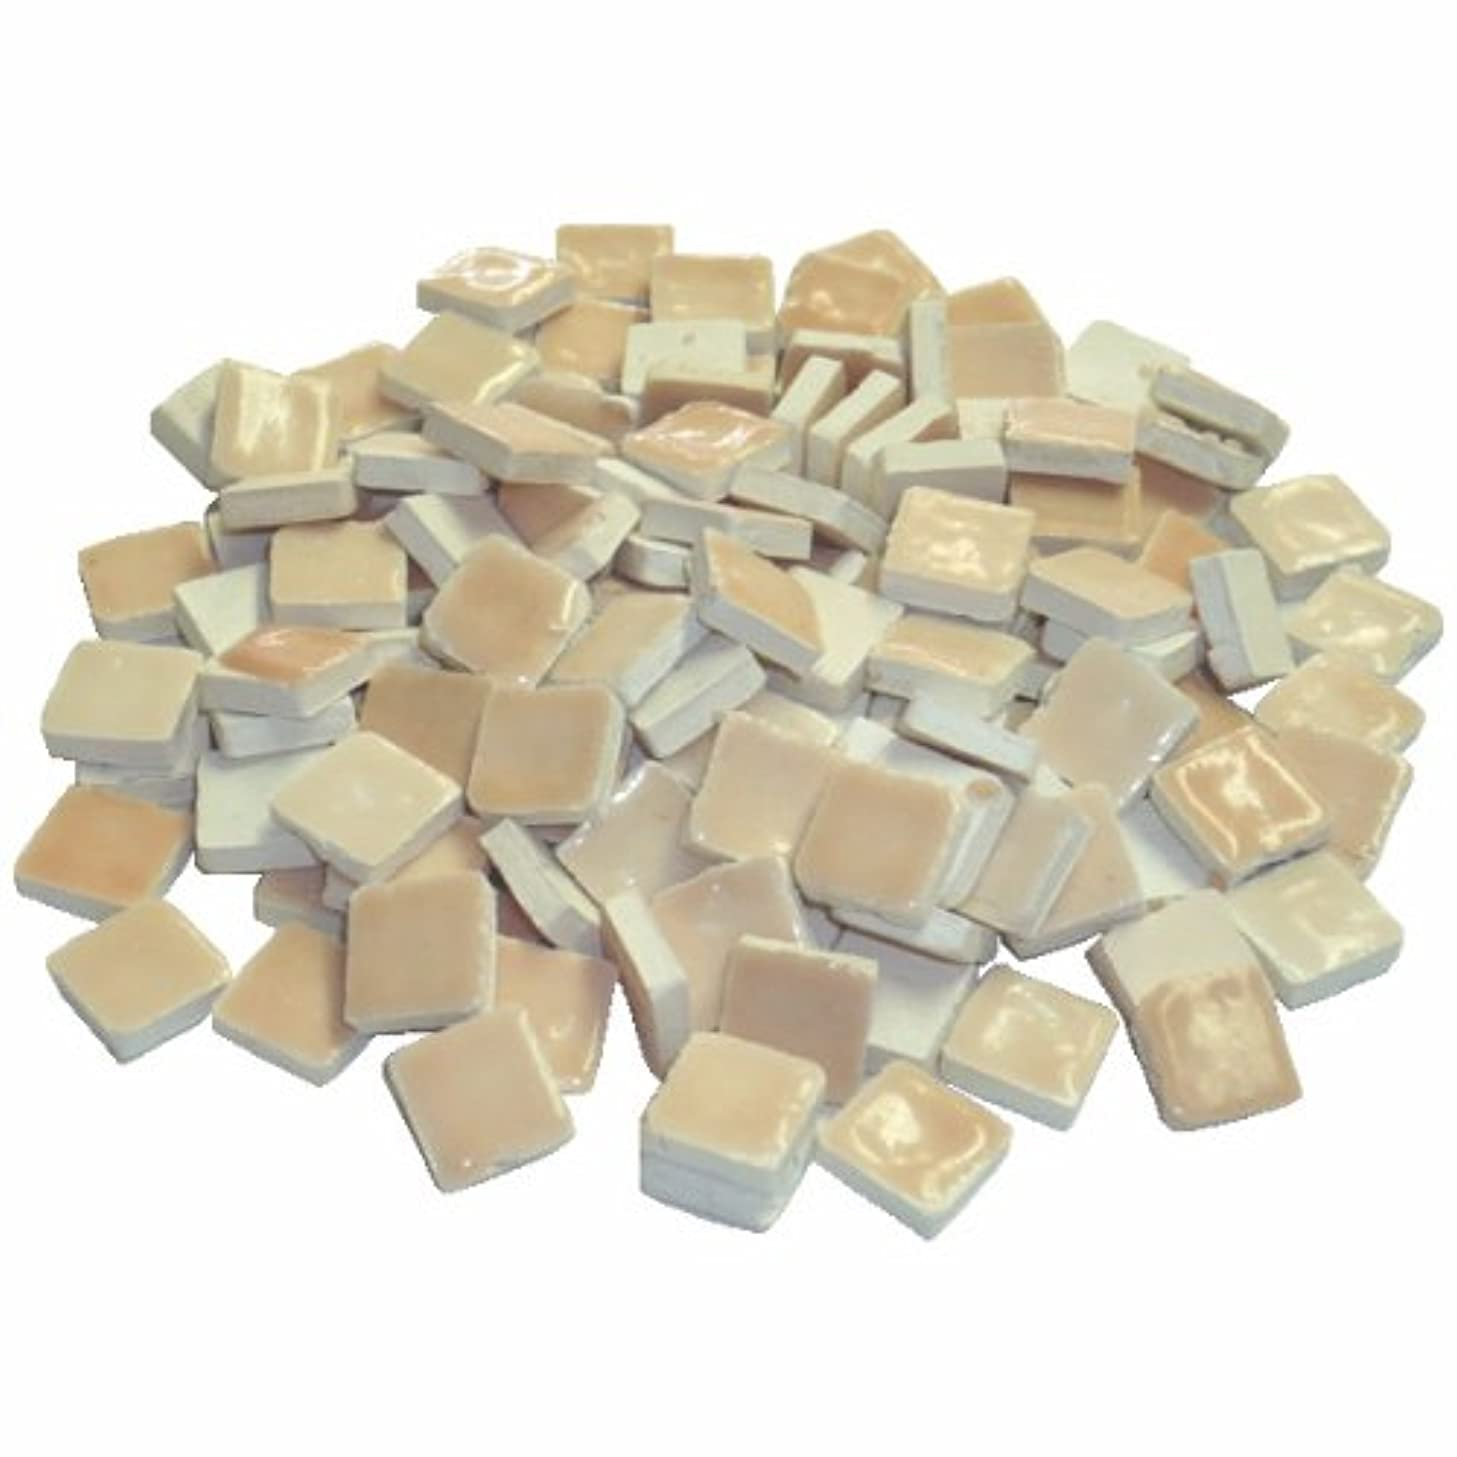 Mosaix 10 x 10 x 3 mm 70 g 150-Piece Ceramic Glazed Mosaic Tiles, Light Pink